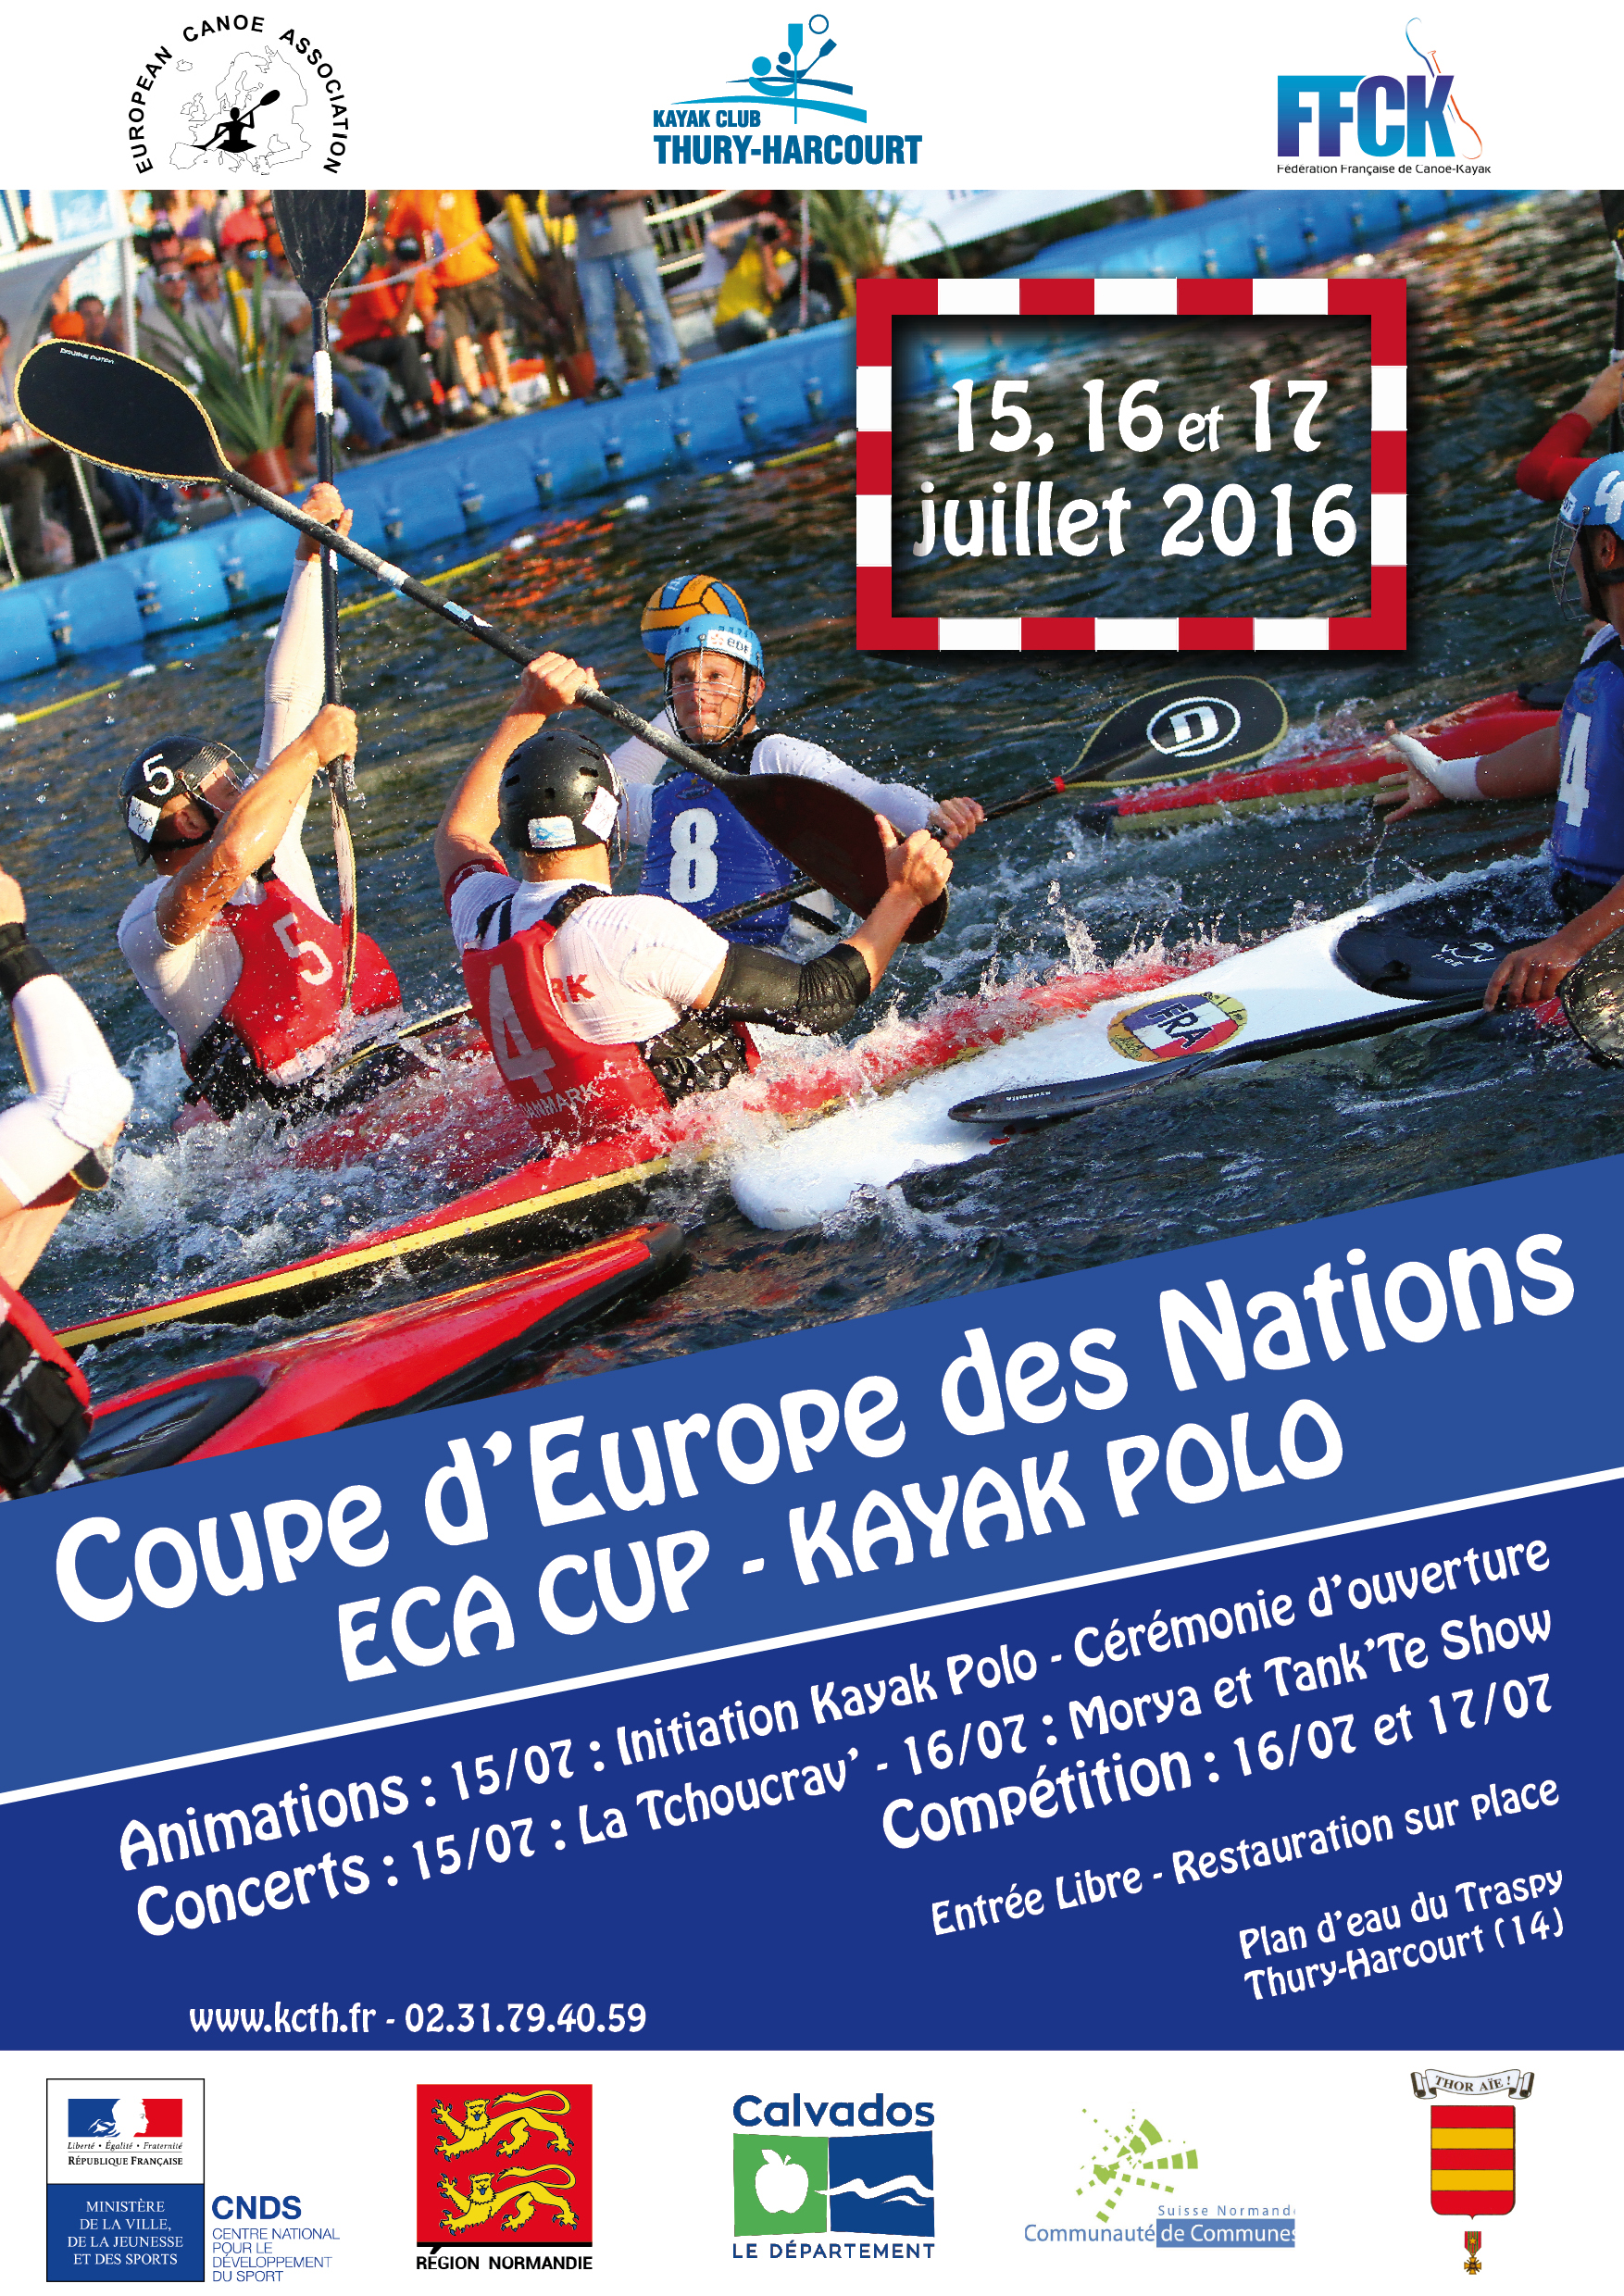 Eca cup coupe d 39 europe des nations 2016 un cocktail d 39 activit s pour tous - Calendrier coupe d europe 2016 ...